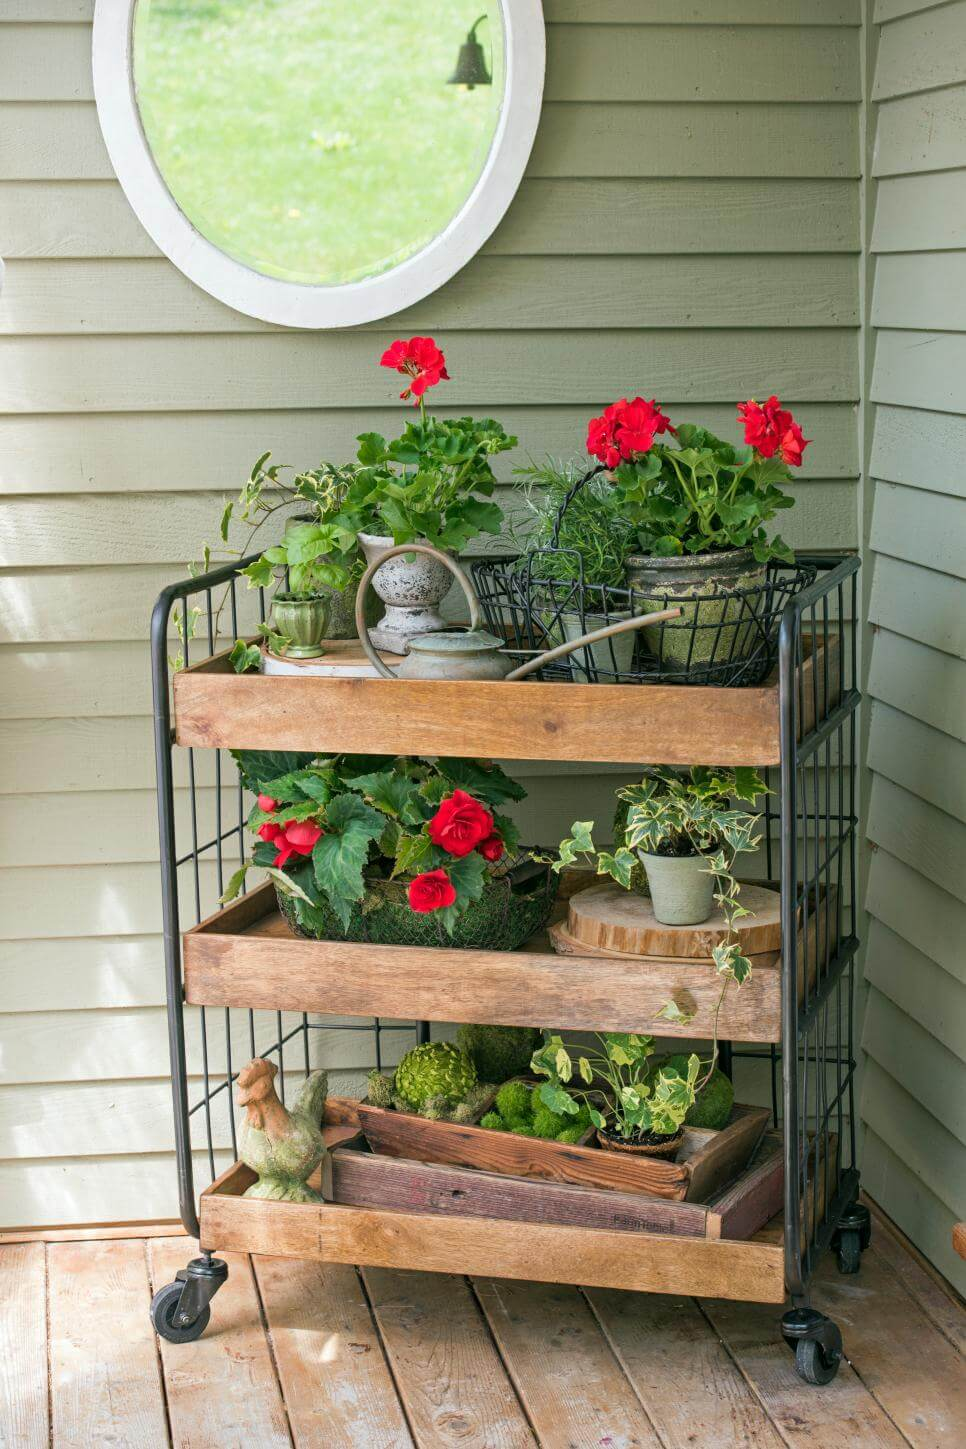 47 Best Rustic Farmhouse Porch Decor Ideas and Designs for ... on Outdoor Deck Patio Ideas id=64843